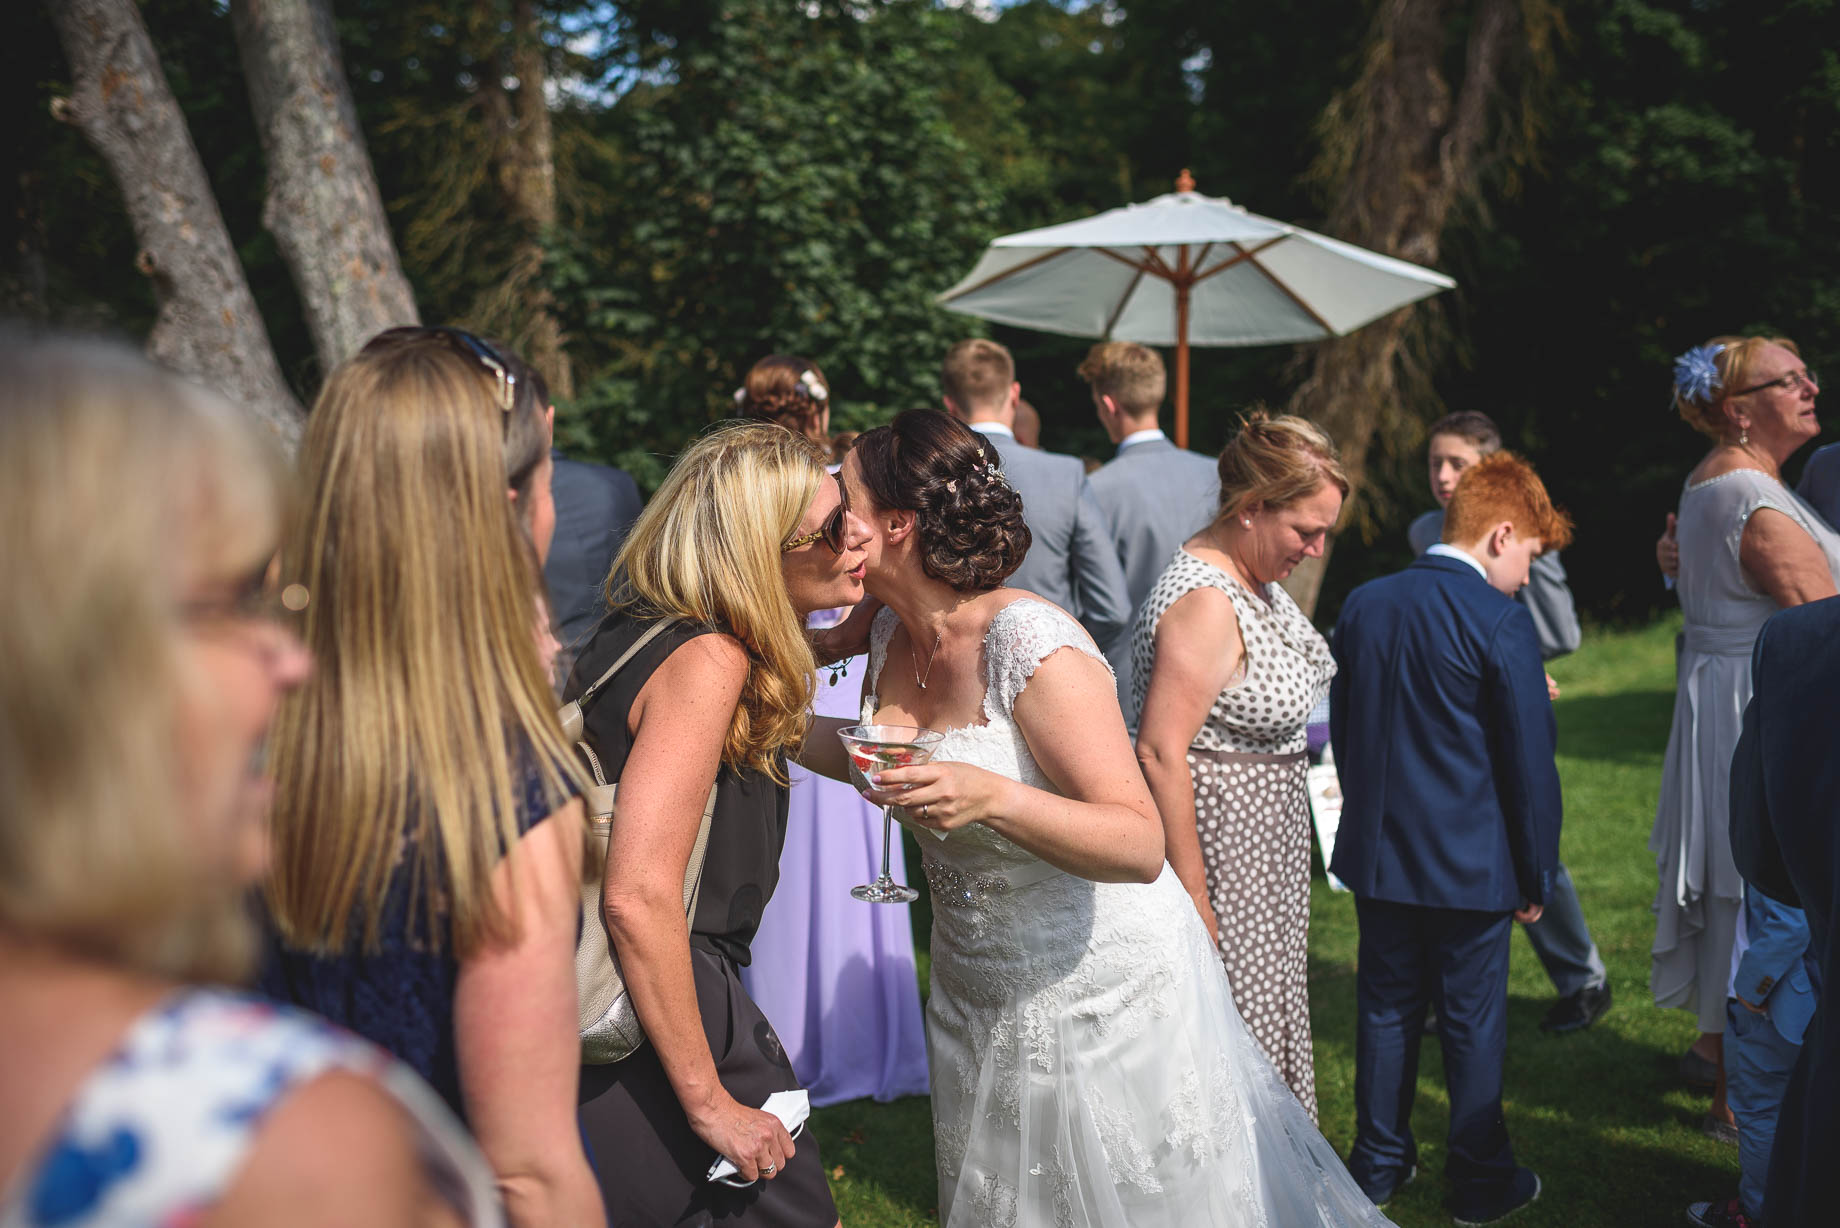 Luton Hoo wedding photography by Guy Collier Photography - Lauren and Gem (86 of 178)